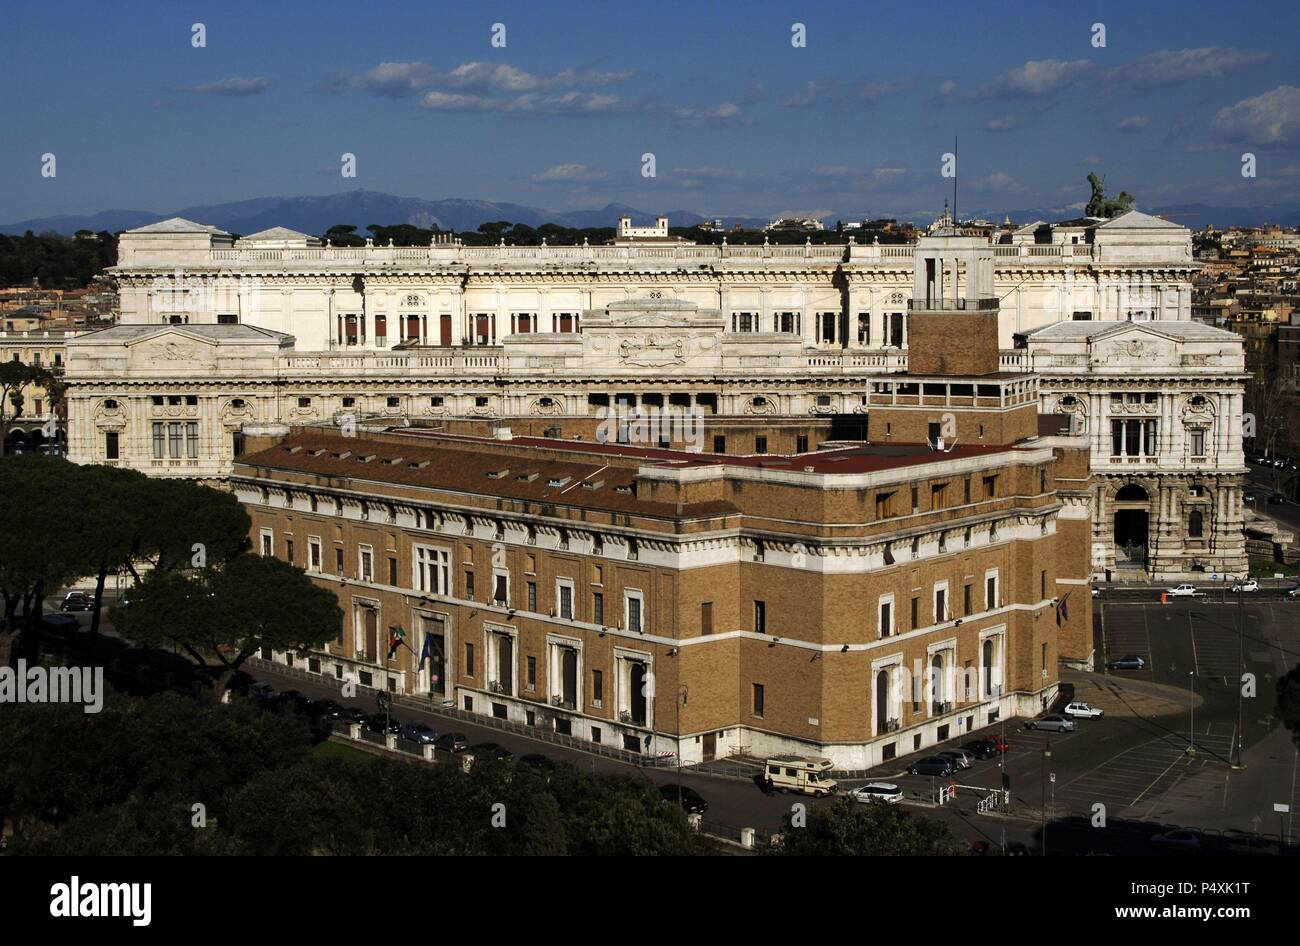 Italy. Rome. The Palace of Justice, seat of the Supreme Court of Cassation and the Judicial Public Library. Designed by Guglielmo Calderini and built between 1888 and 1910. - Stock Image